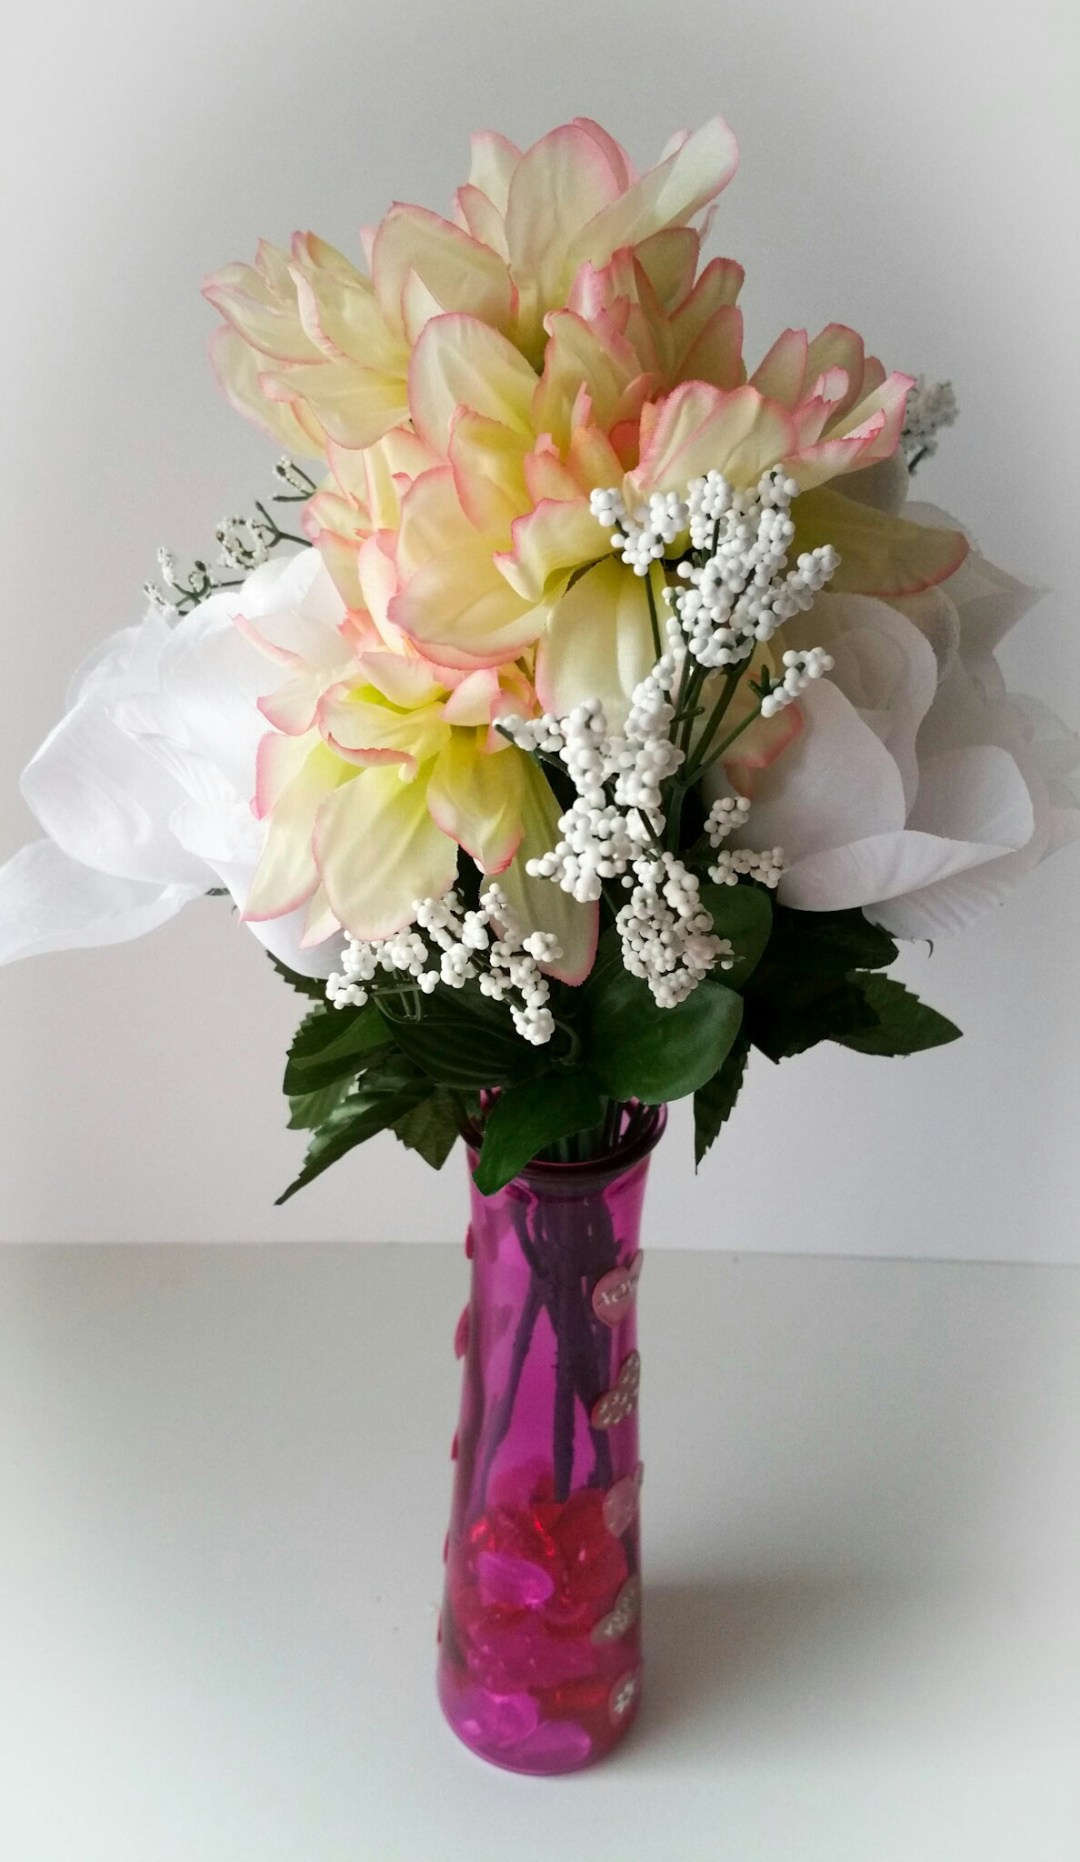 Super-Cute-DIY-Heart-Vase-Bouquet-Thirteen-LiWBF